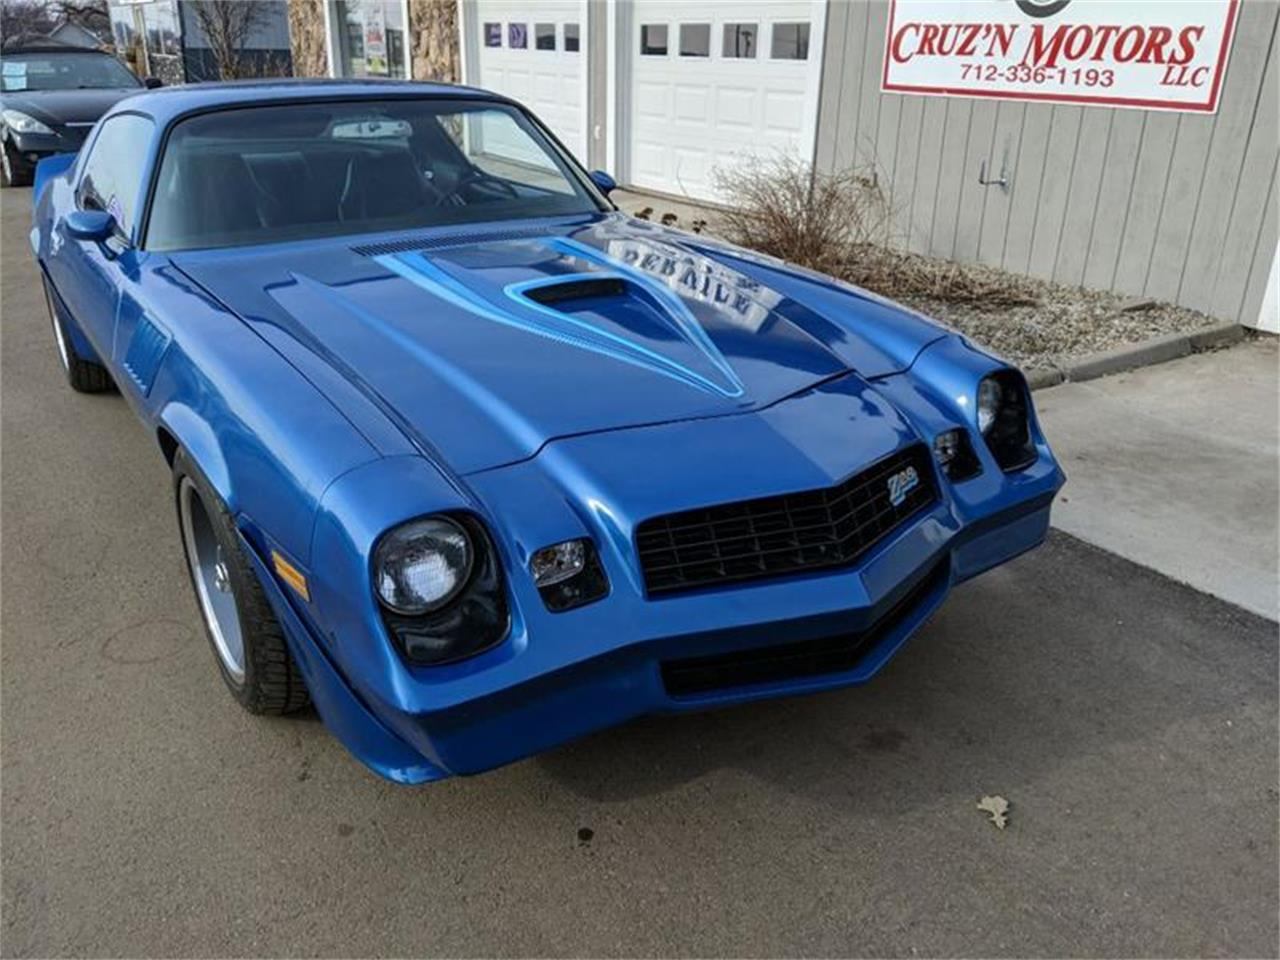 Large Picture of 1978 Camaro Auction Vehicle Offered by Cruz'n Motors - PX97